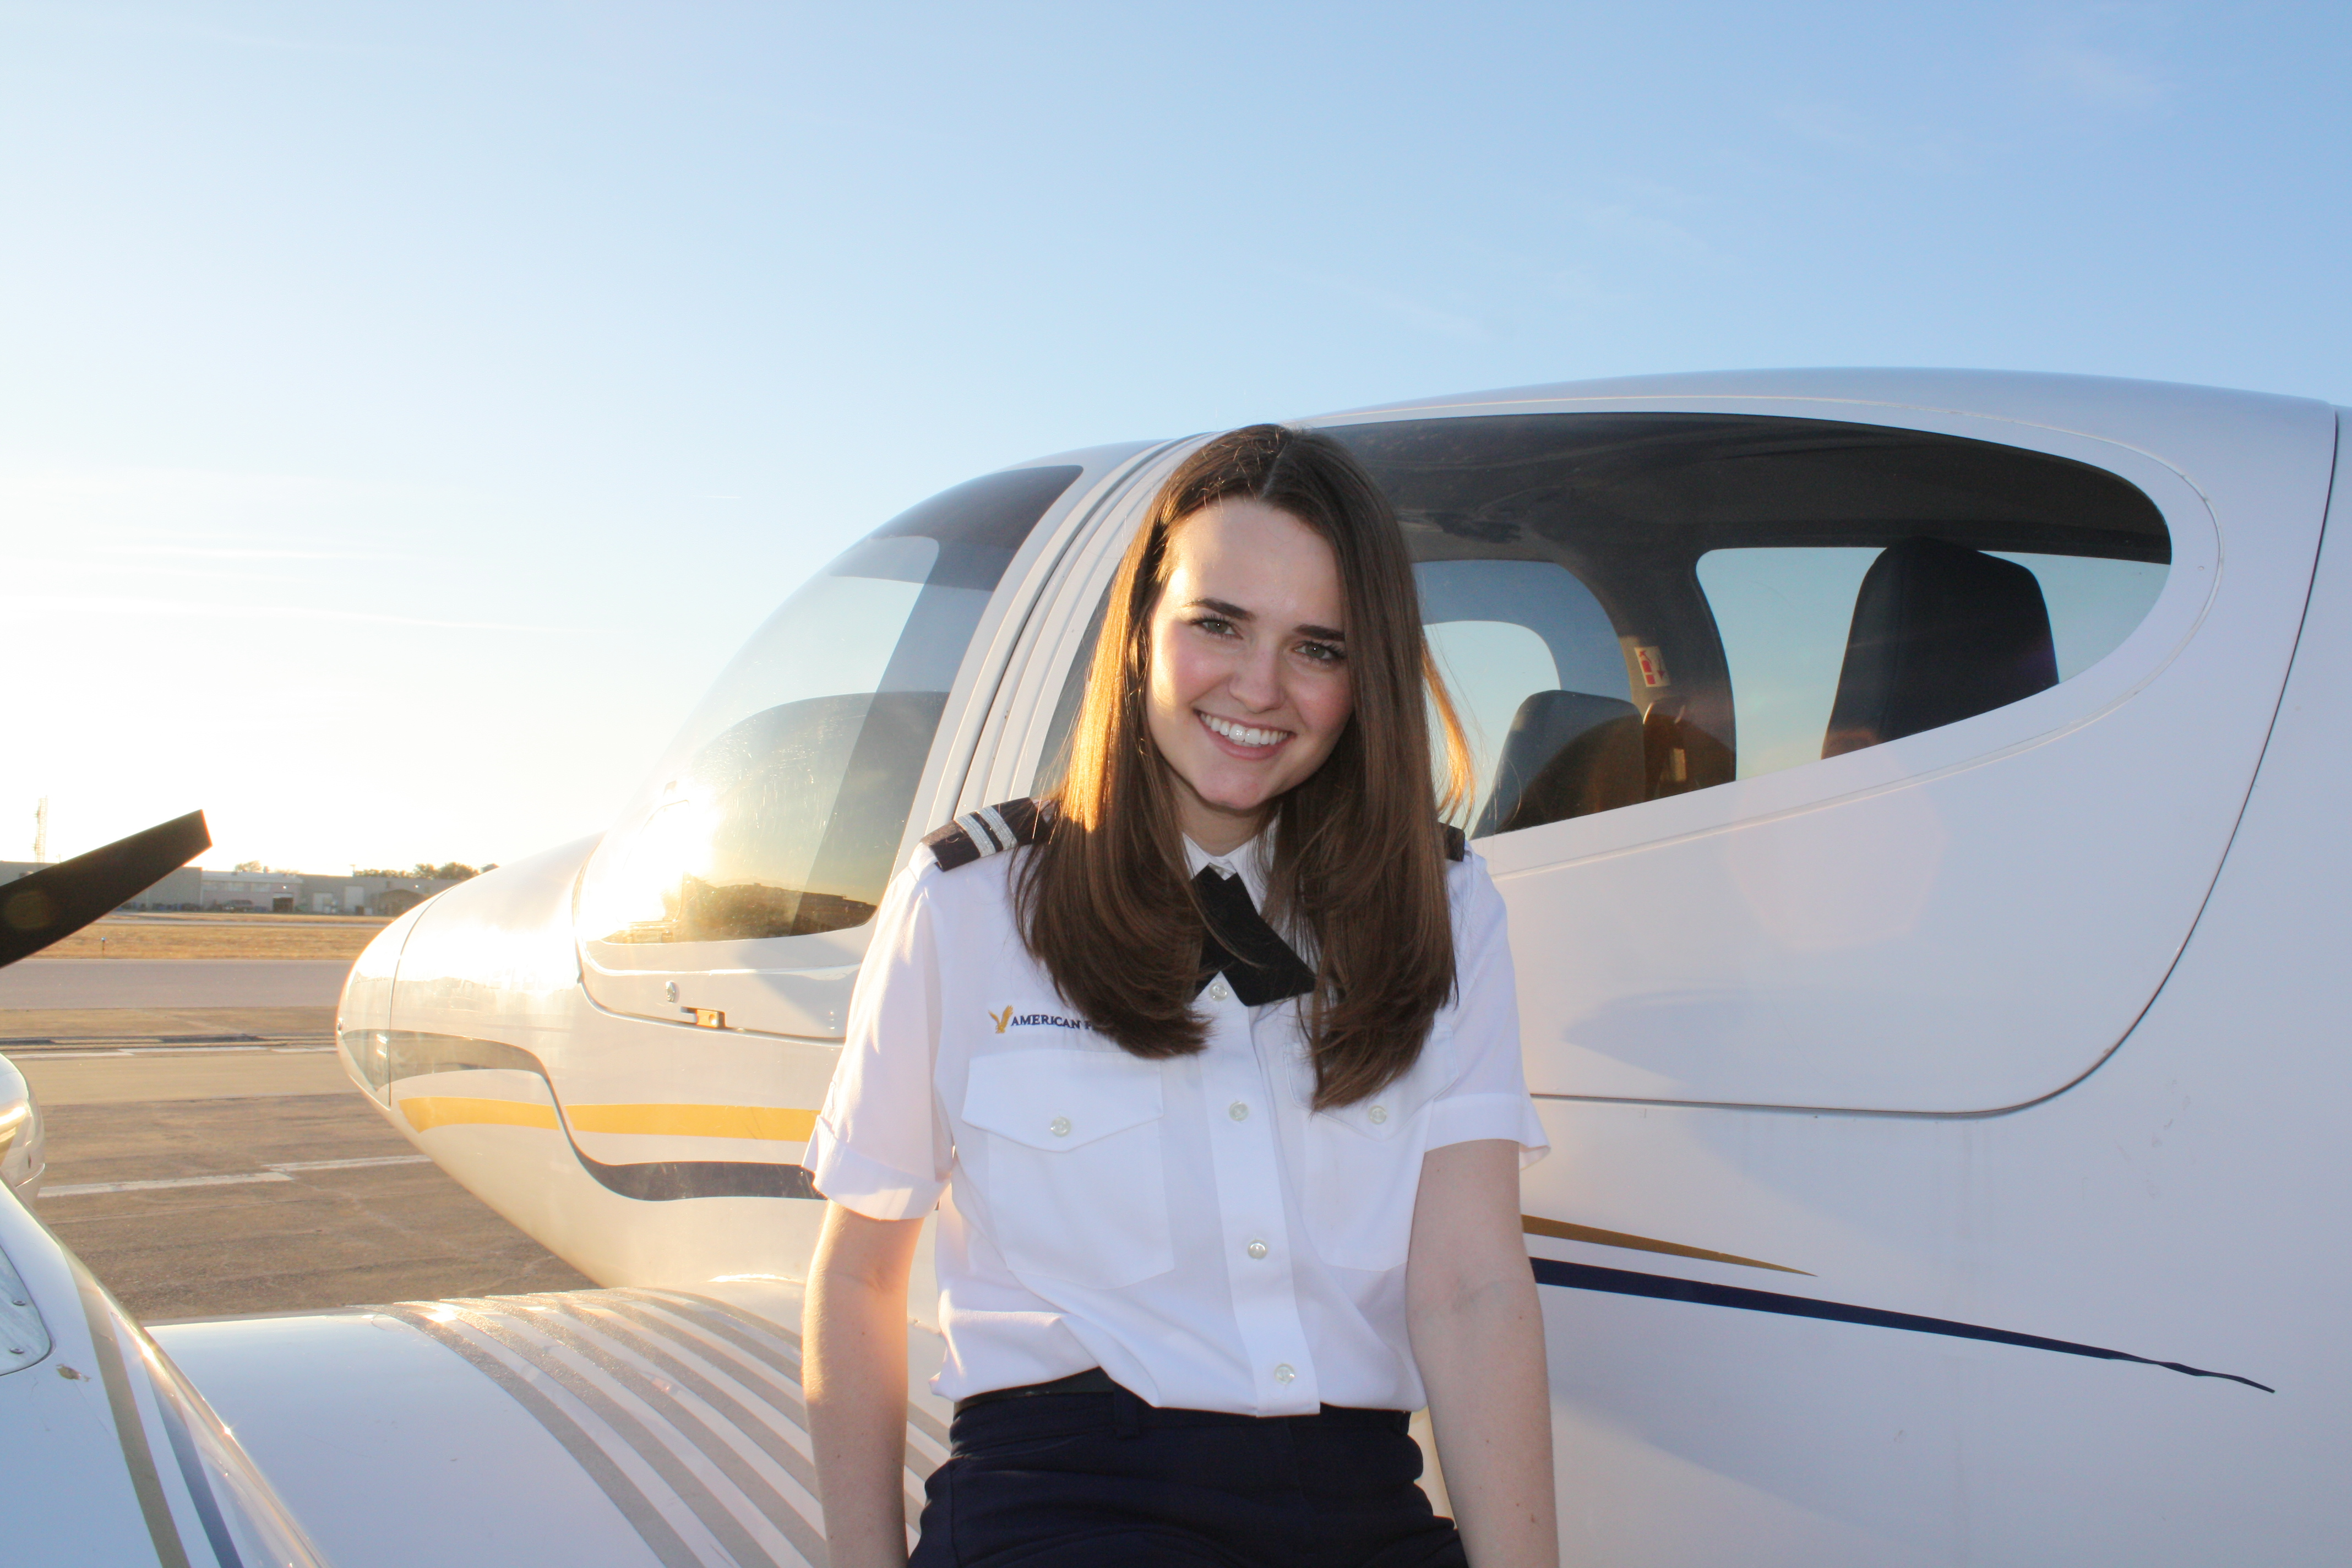 The Next Generation of Aviation Professionals: A New Normal